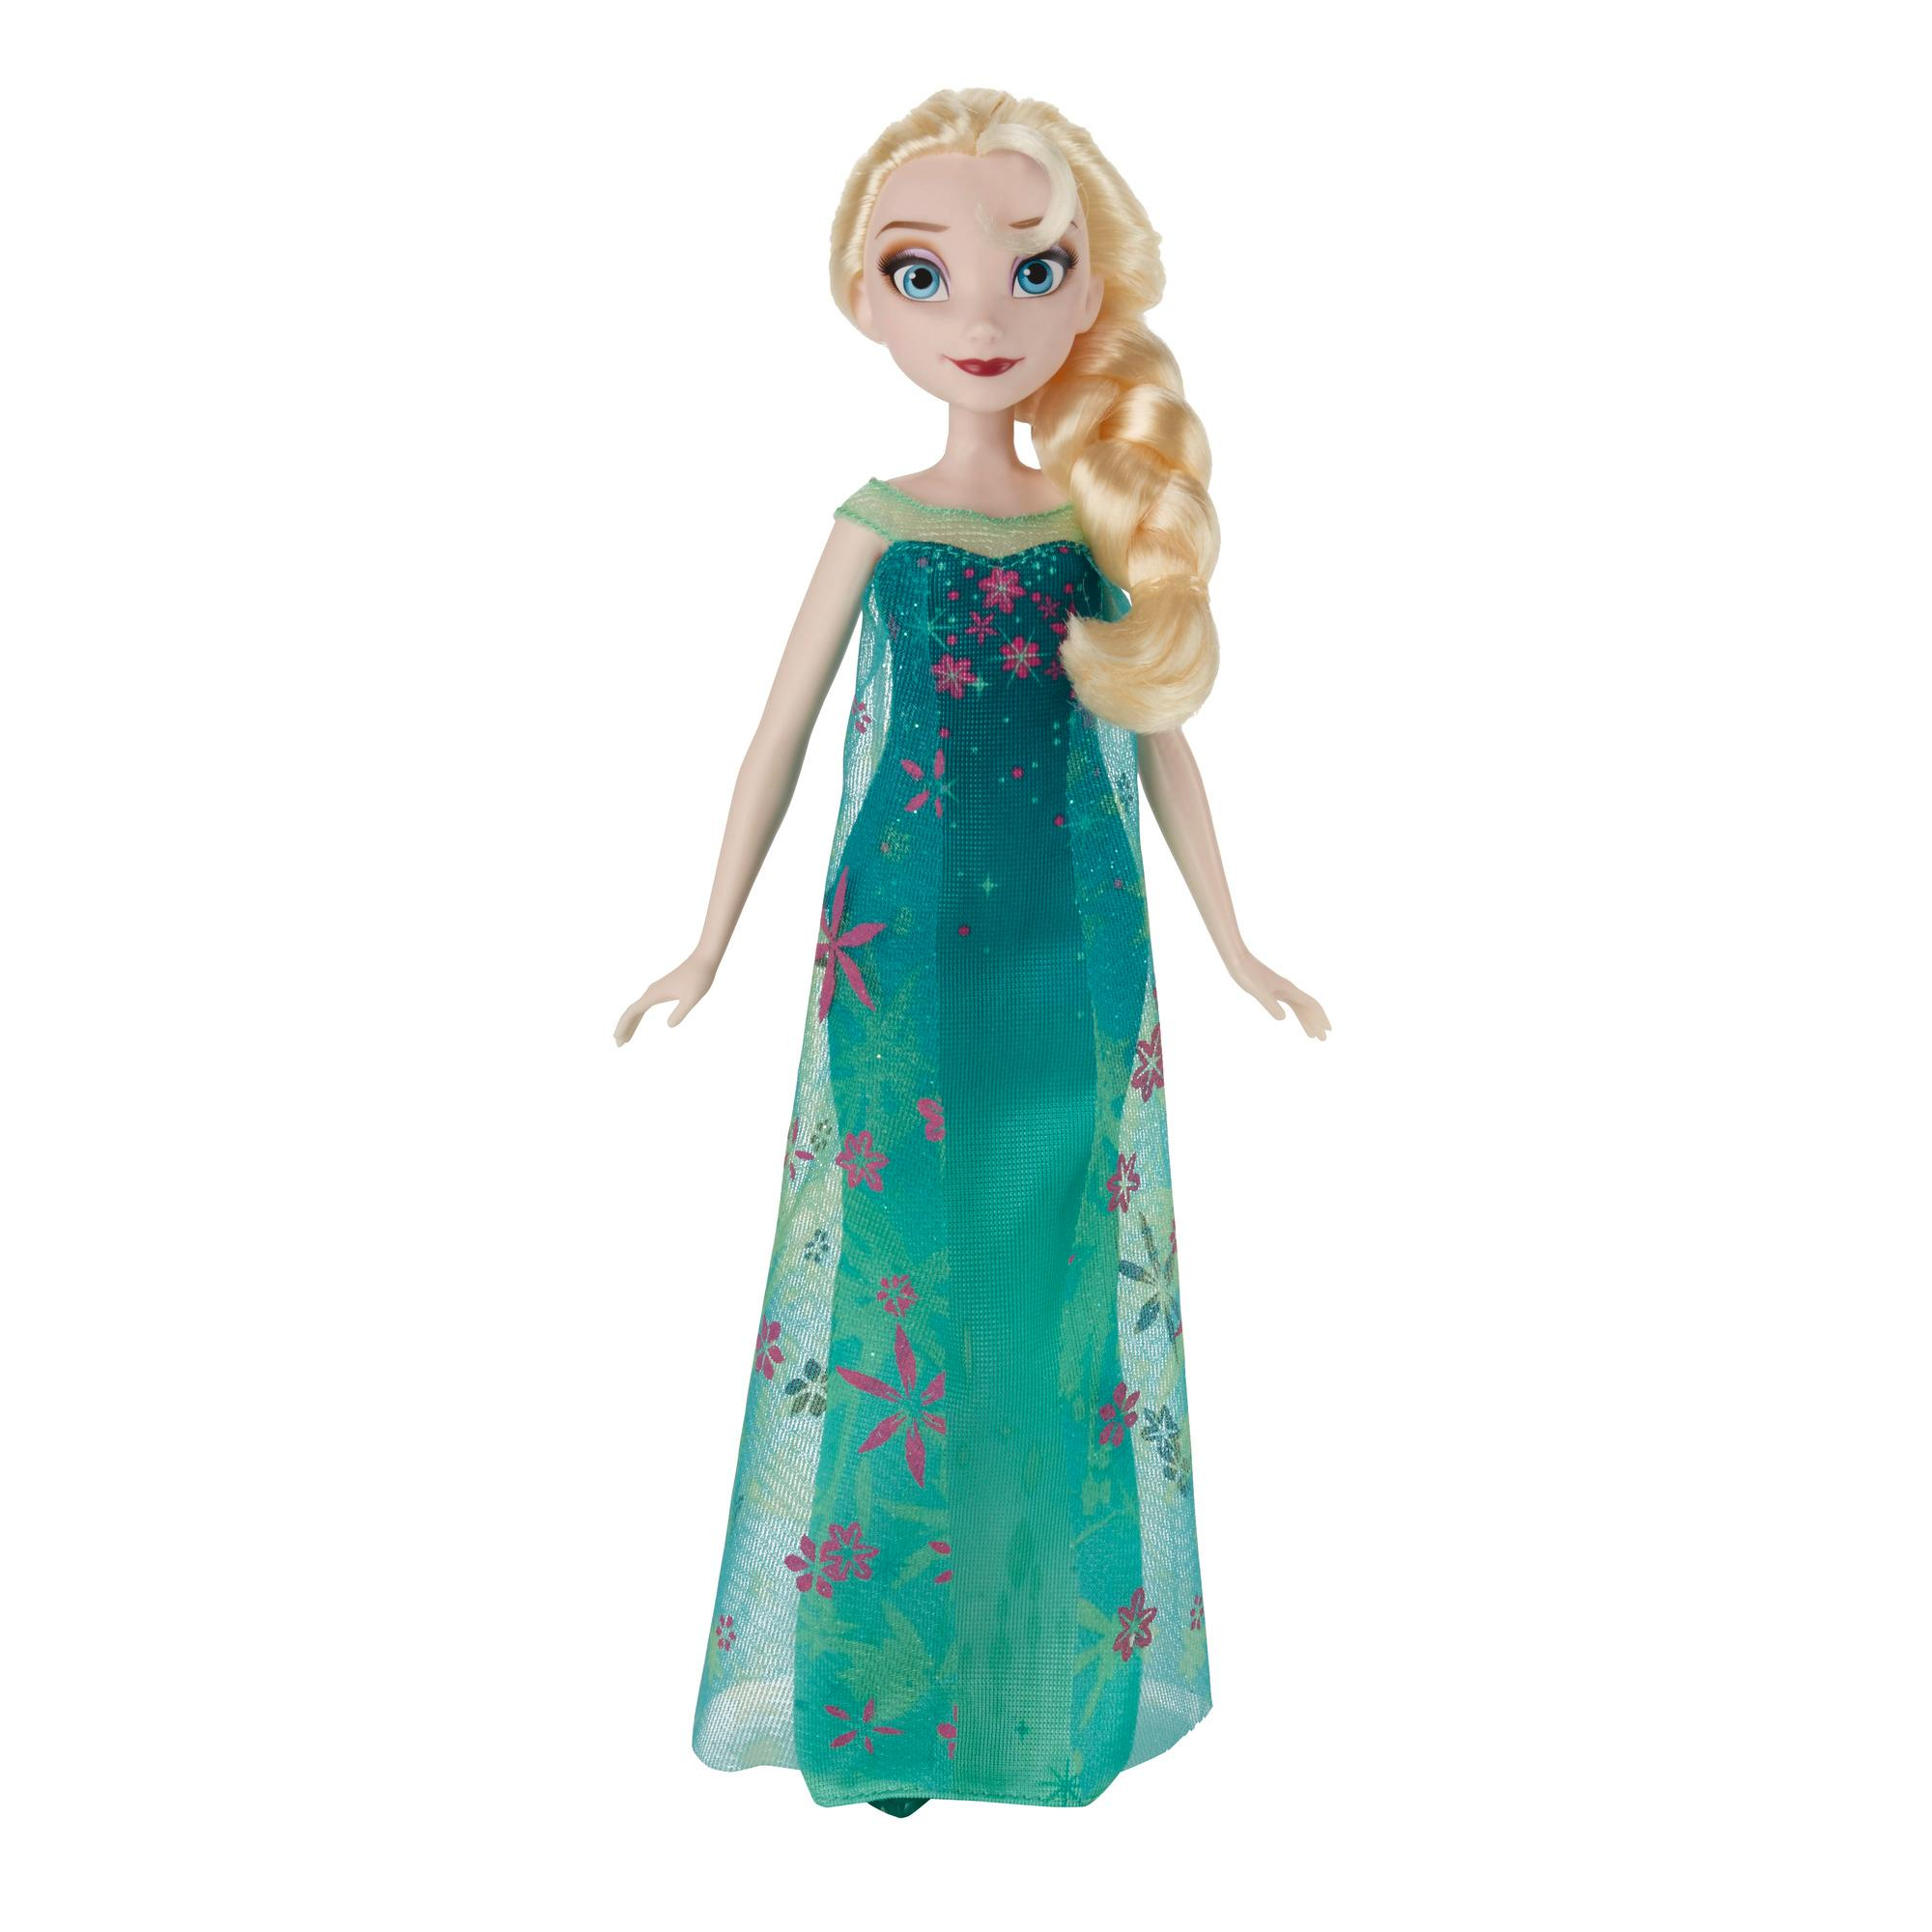 3 Hasbro Disney Frozen Classic Fever Fashion